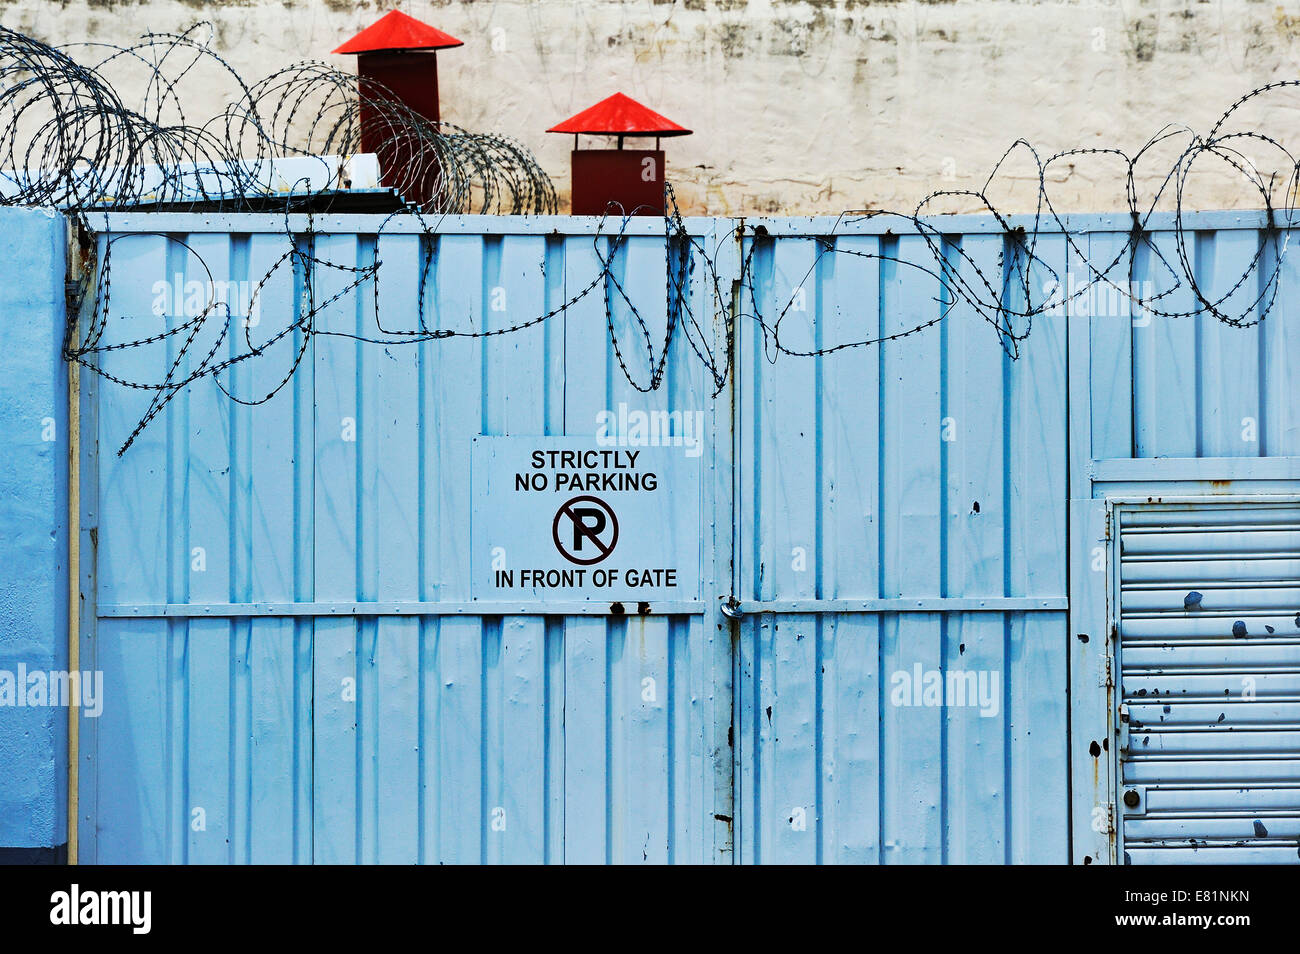 Iron gate with barbed wire, Windhoek, Namibia - Stock Image